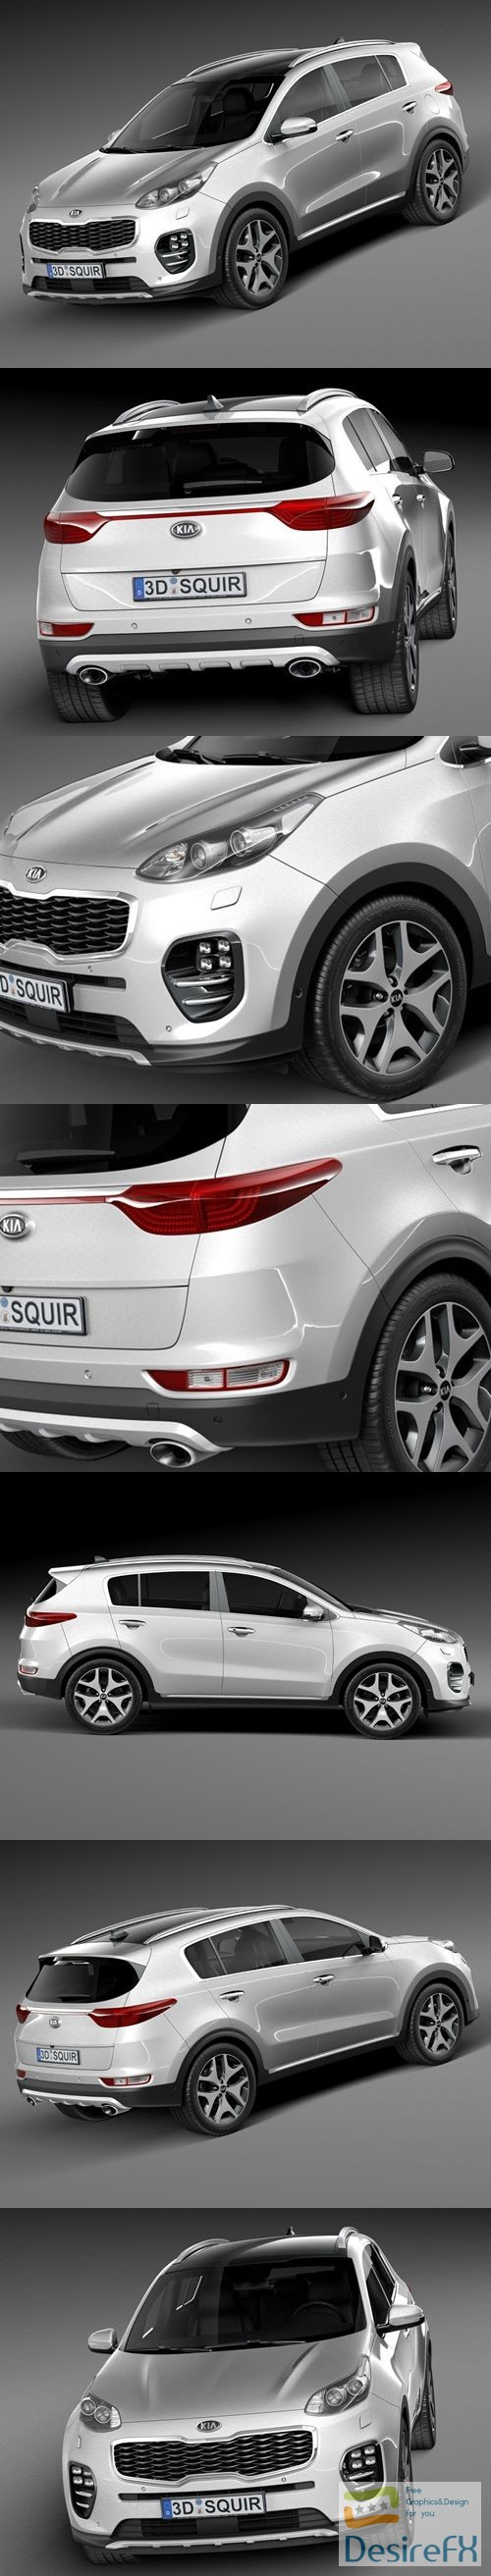 3d-models - Kia Sportage 2016 3D Model